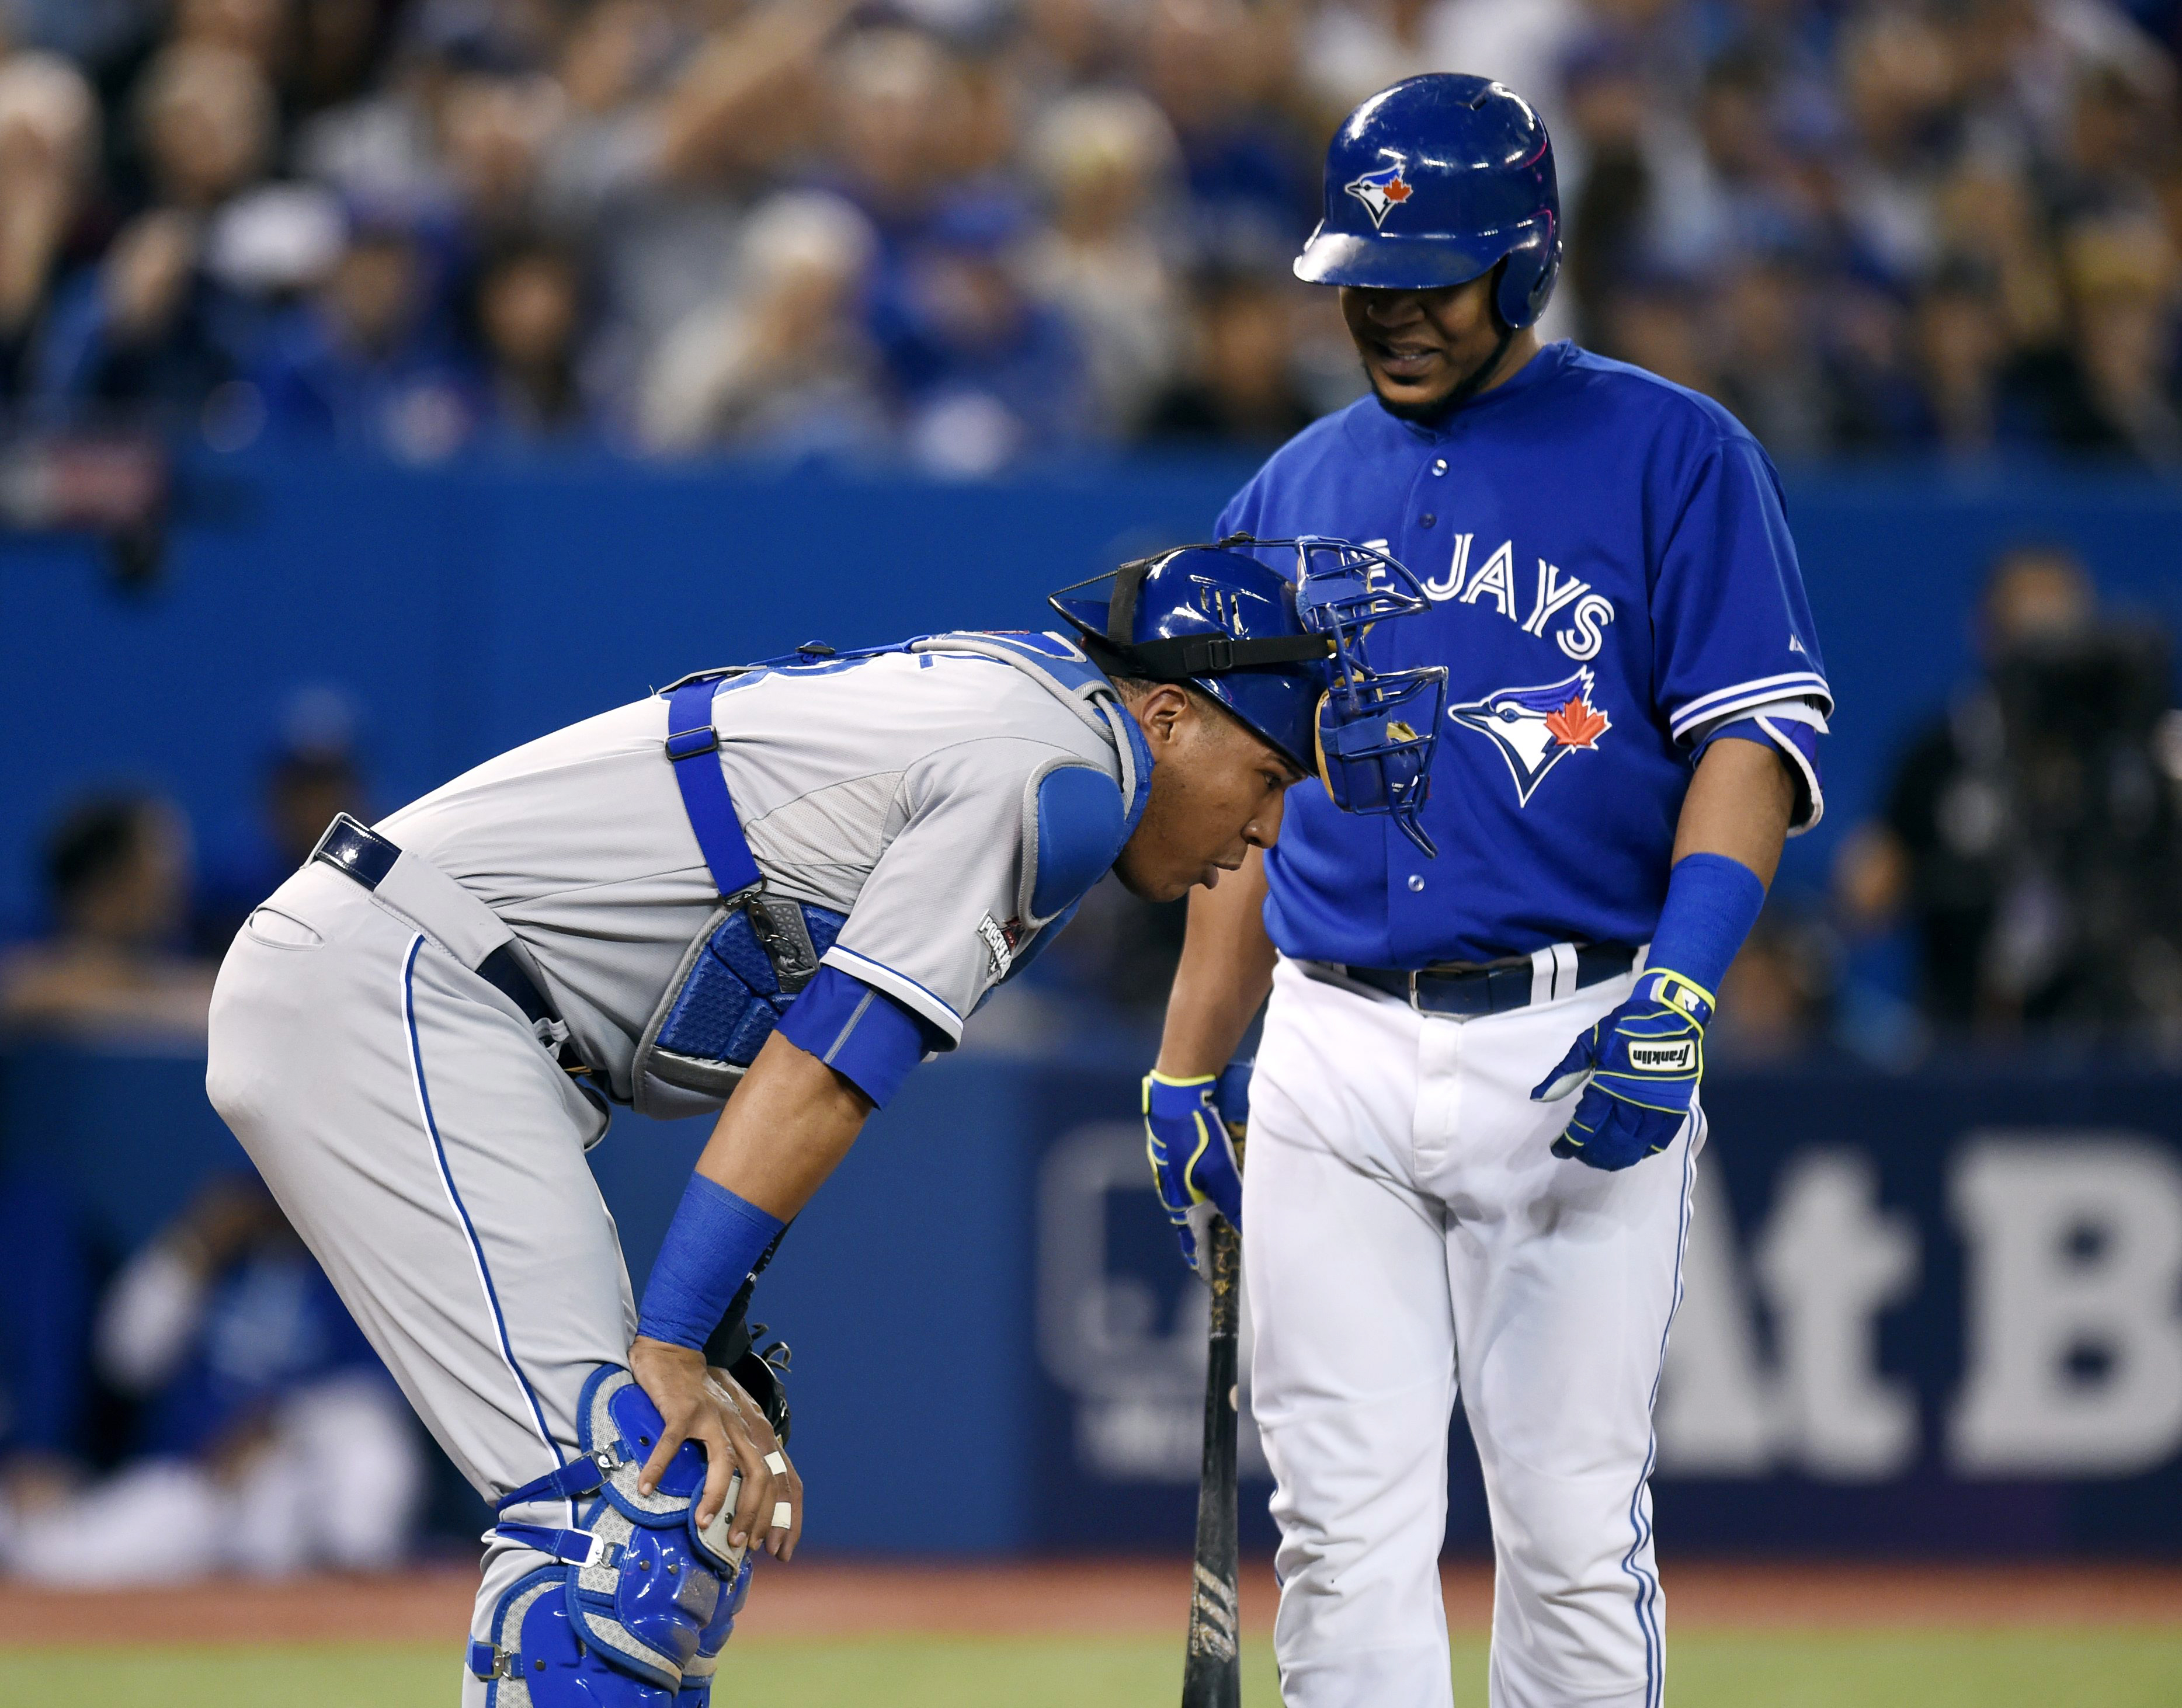 Kansas City Royals' catcher Salvador Perez, left, recovers after getting hit by a foul tip by Toronto Blue Jays' designated hitter Edwin Encarnacion during the first inning in Game 4 of baseball's American League Championship Series on Tuesday, Oct. 20, 2015, in Toronto. (Frank Gunn/The Canadian Press via AP) MANDATORY CREDIT